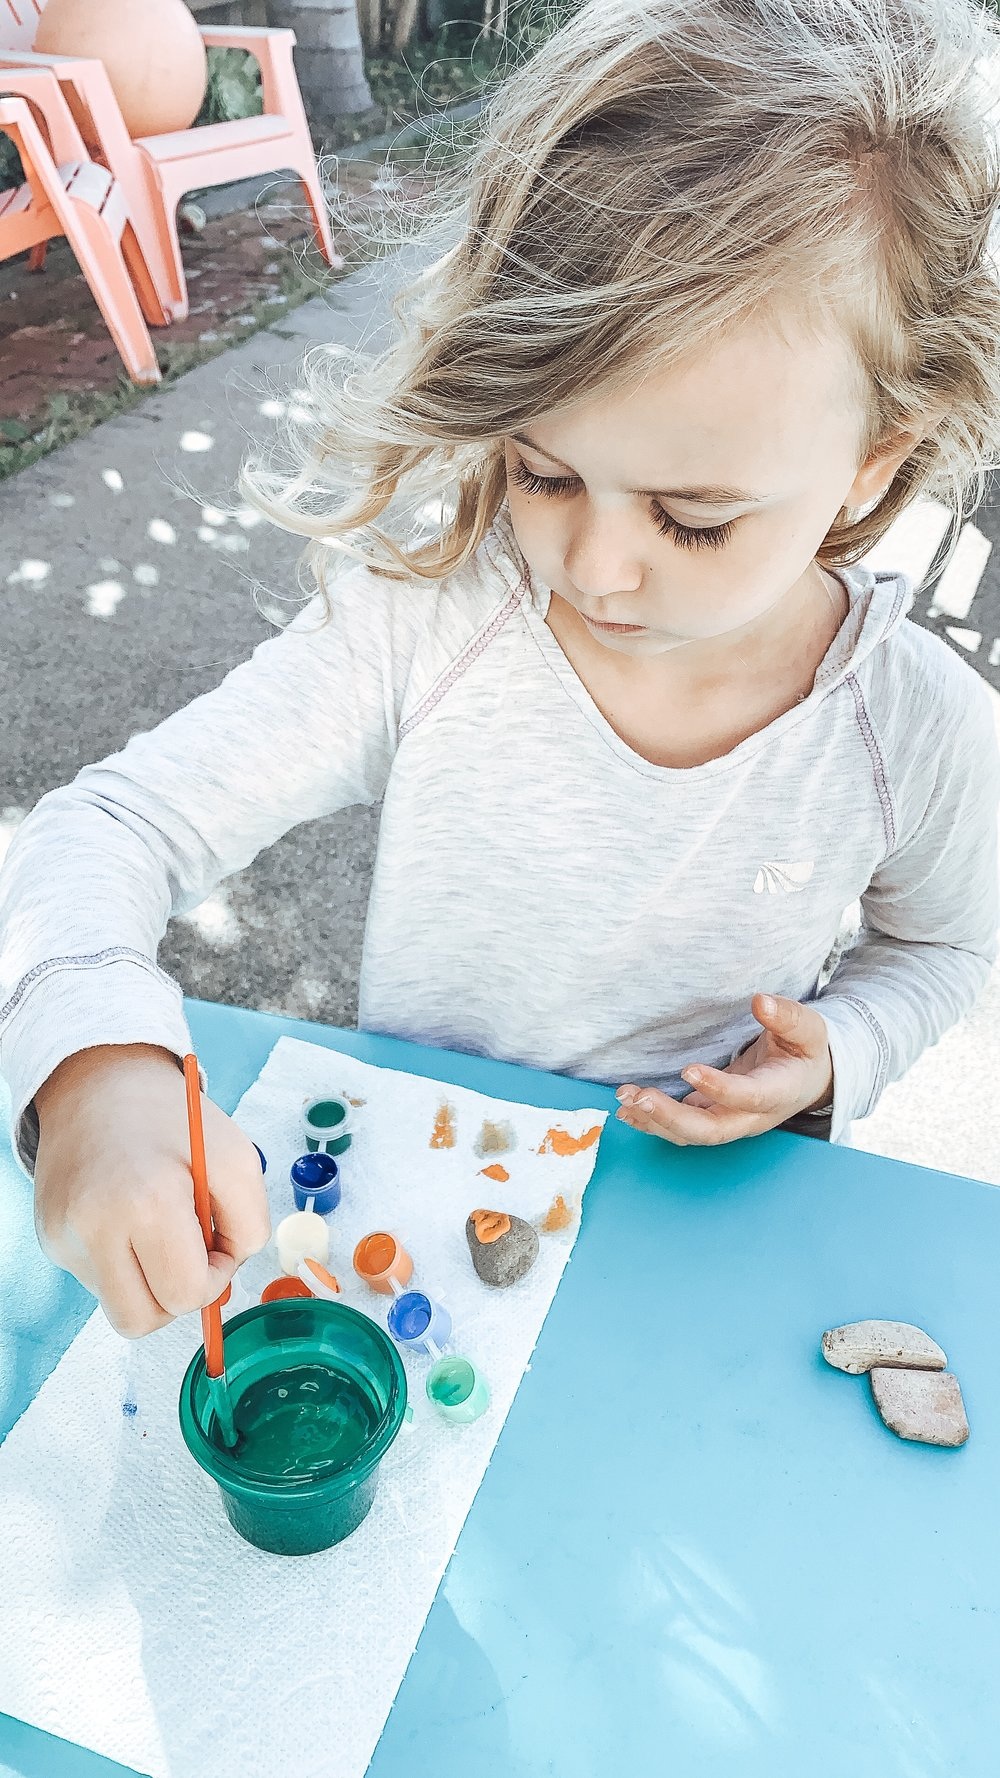 Paisley was super into painting her rocks. We used cheap paint sets from the dollar store and they worked like a charm!